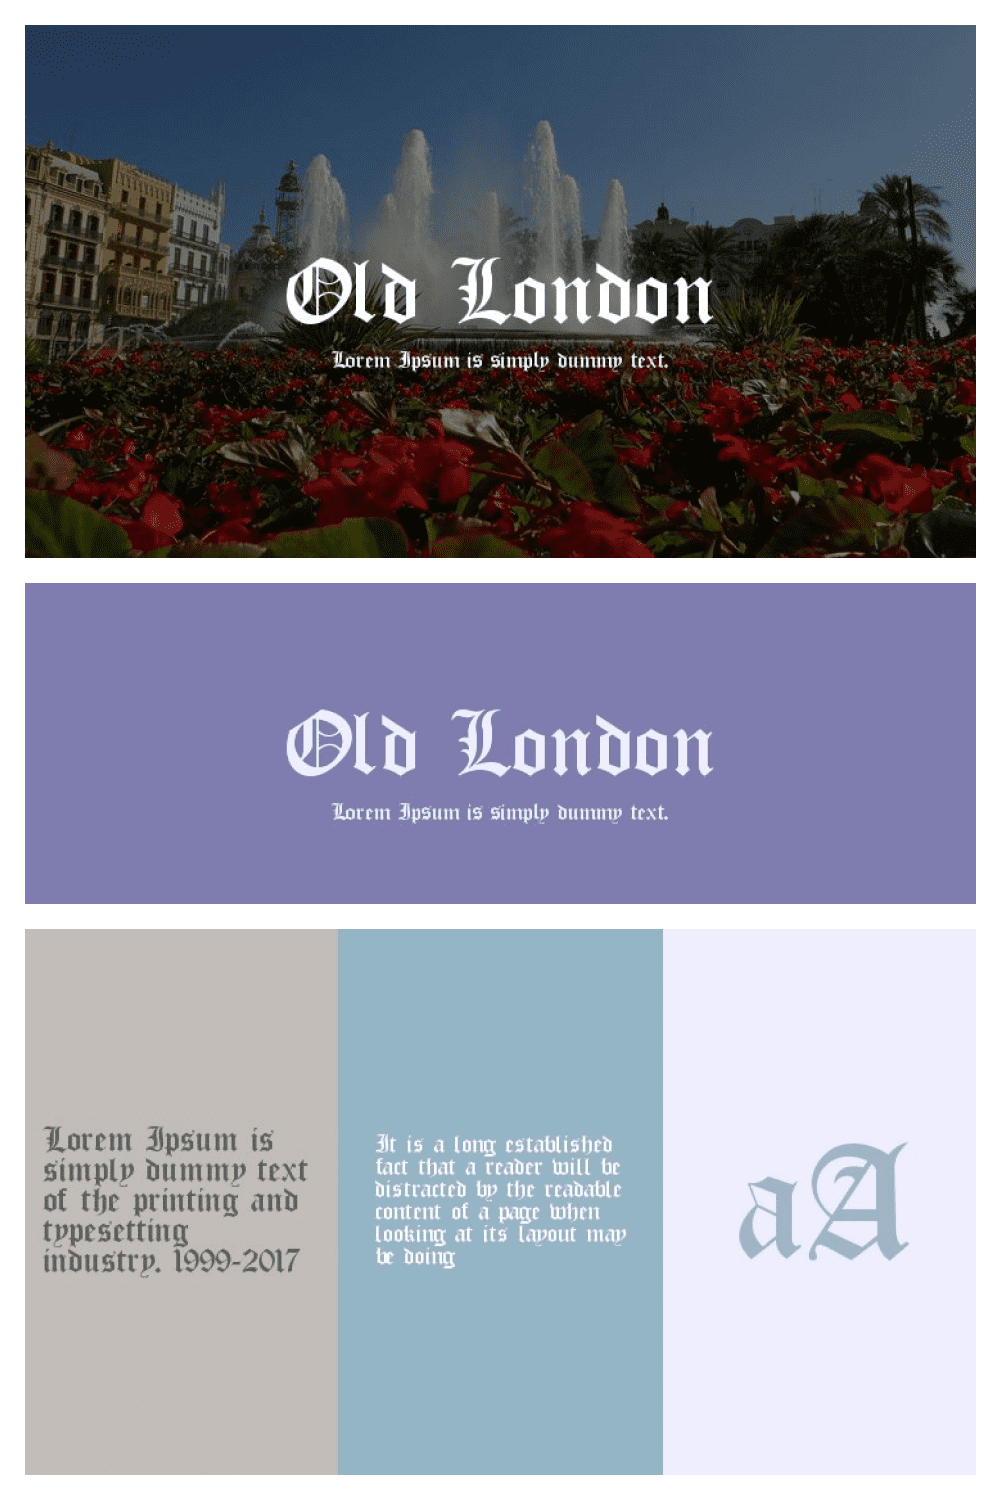 A rocky, rich font to describe the sights of the British capital.